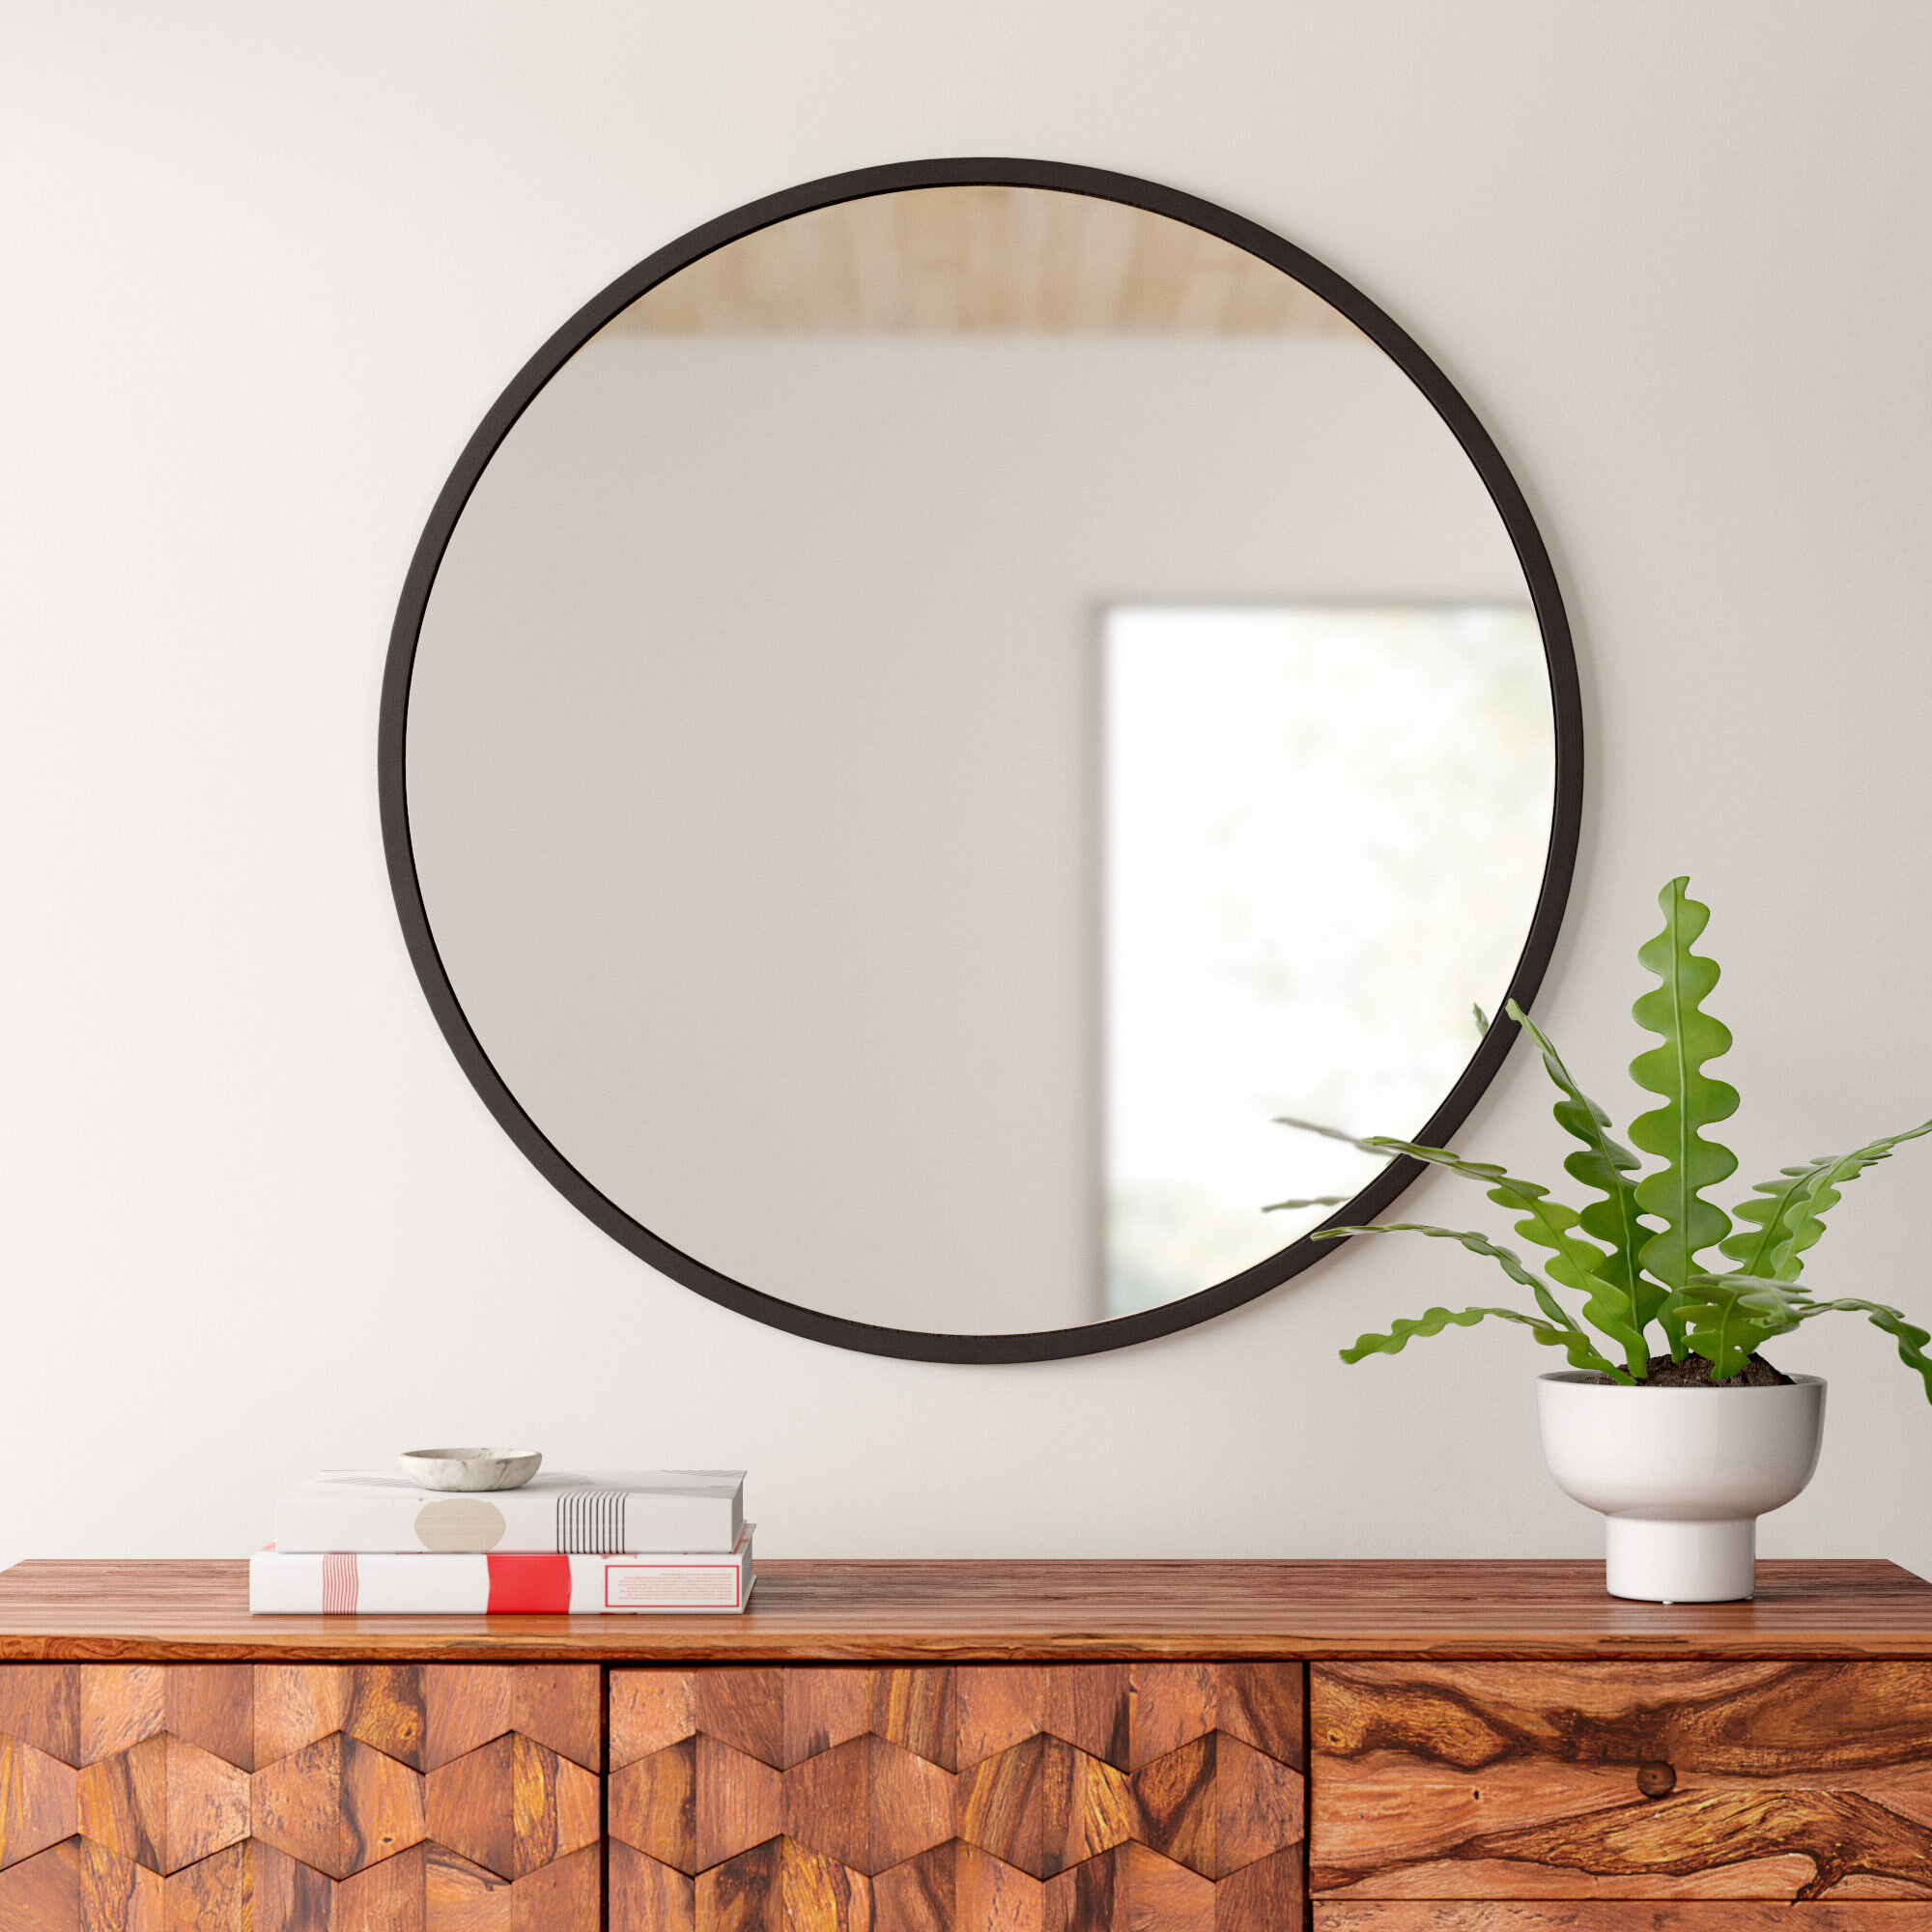 Umbra Hub Modern And Contemporary Accent Mirror Intended For Hub Modern And Contemporary Accent Mirrors (View 26 of 30)